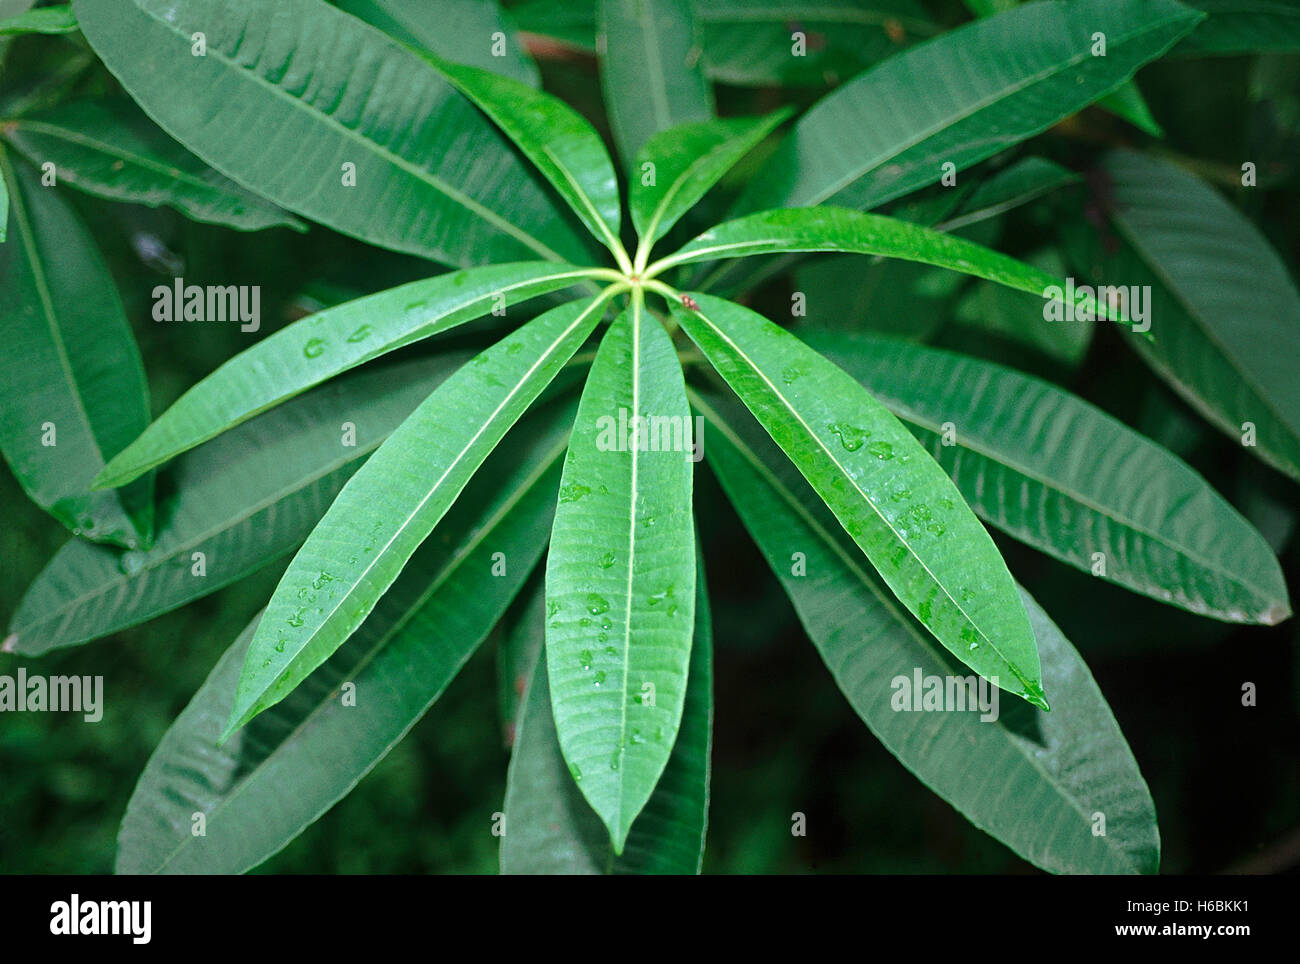 Alstonia Scholaris. Family: Apocyanaceae. The Devil's tree. An elegant evergreen tree with whorled foliage and branches. Accordi Stock Photo